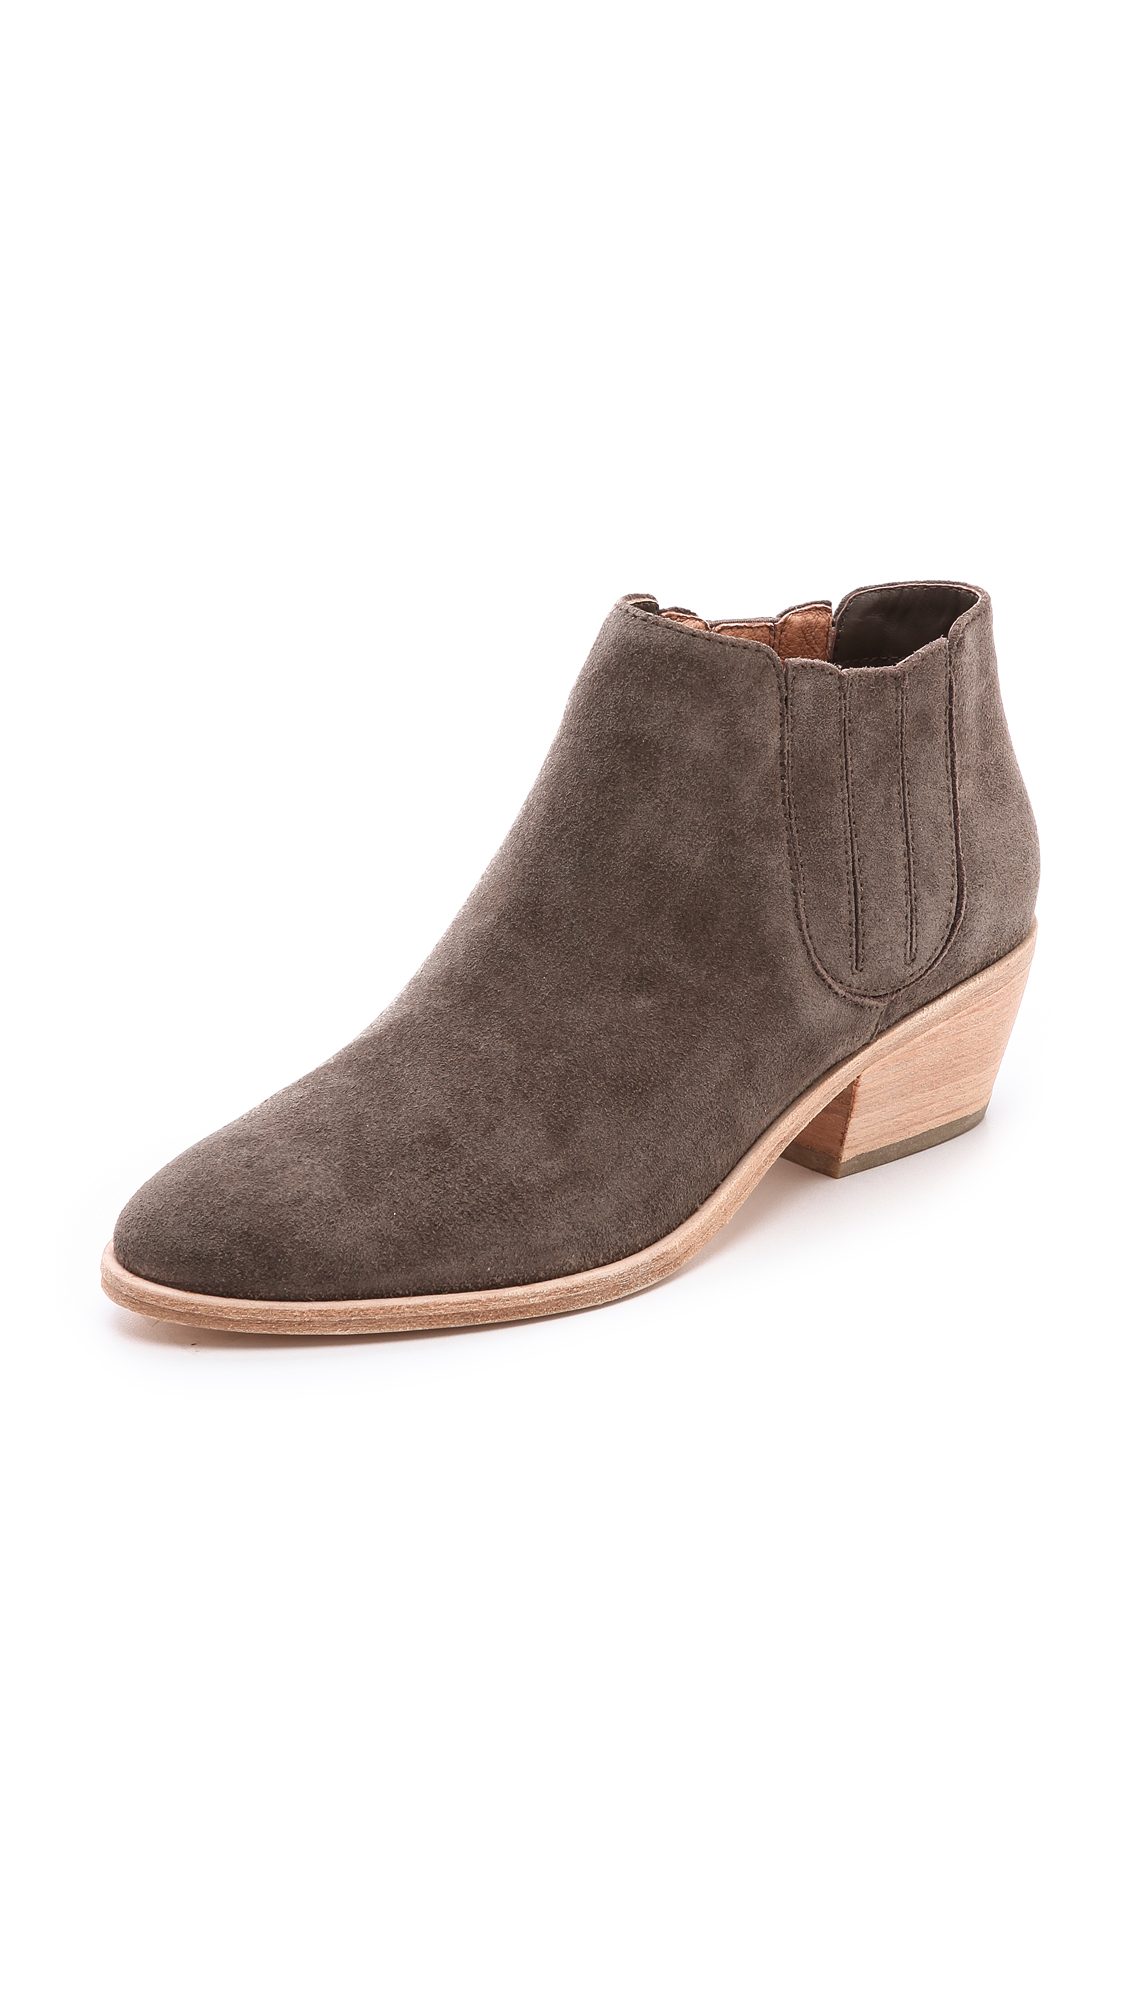 a7508b179dffd Joie Barlow Ankle Booties